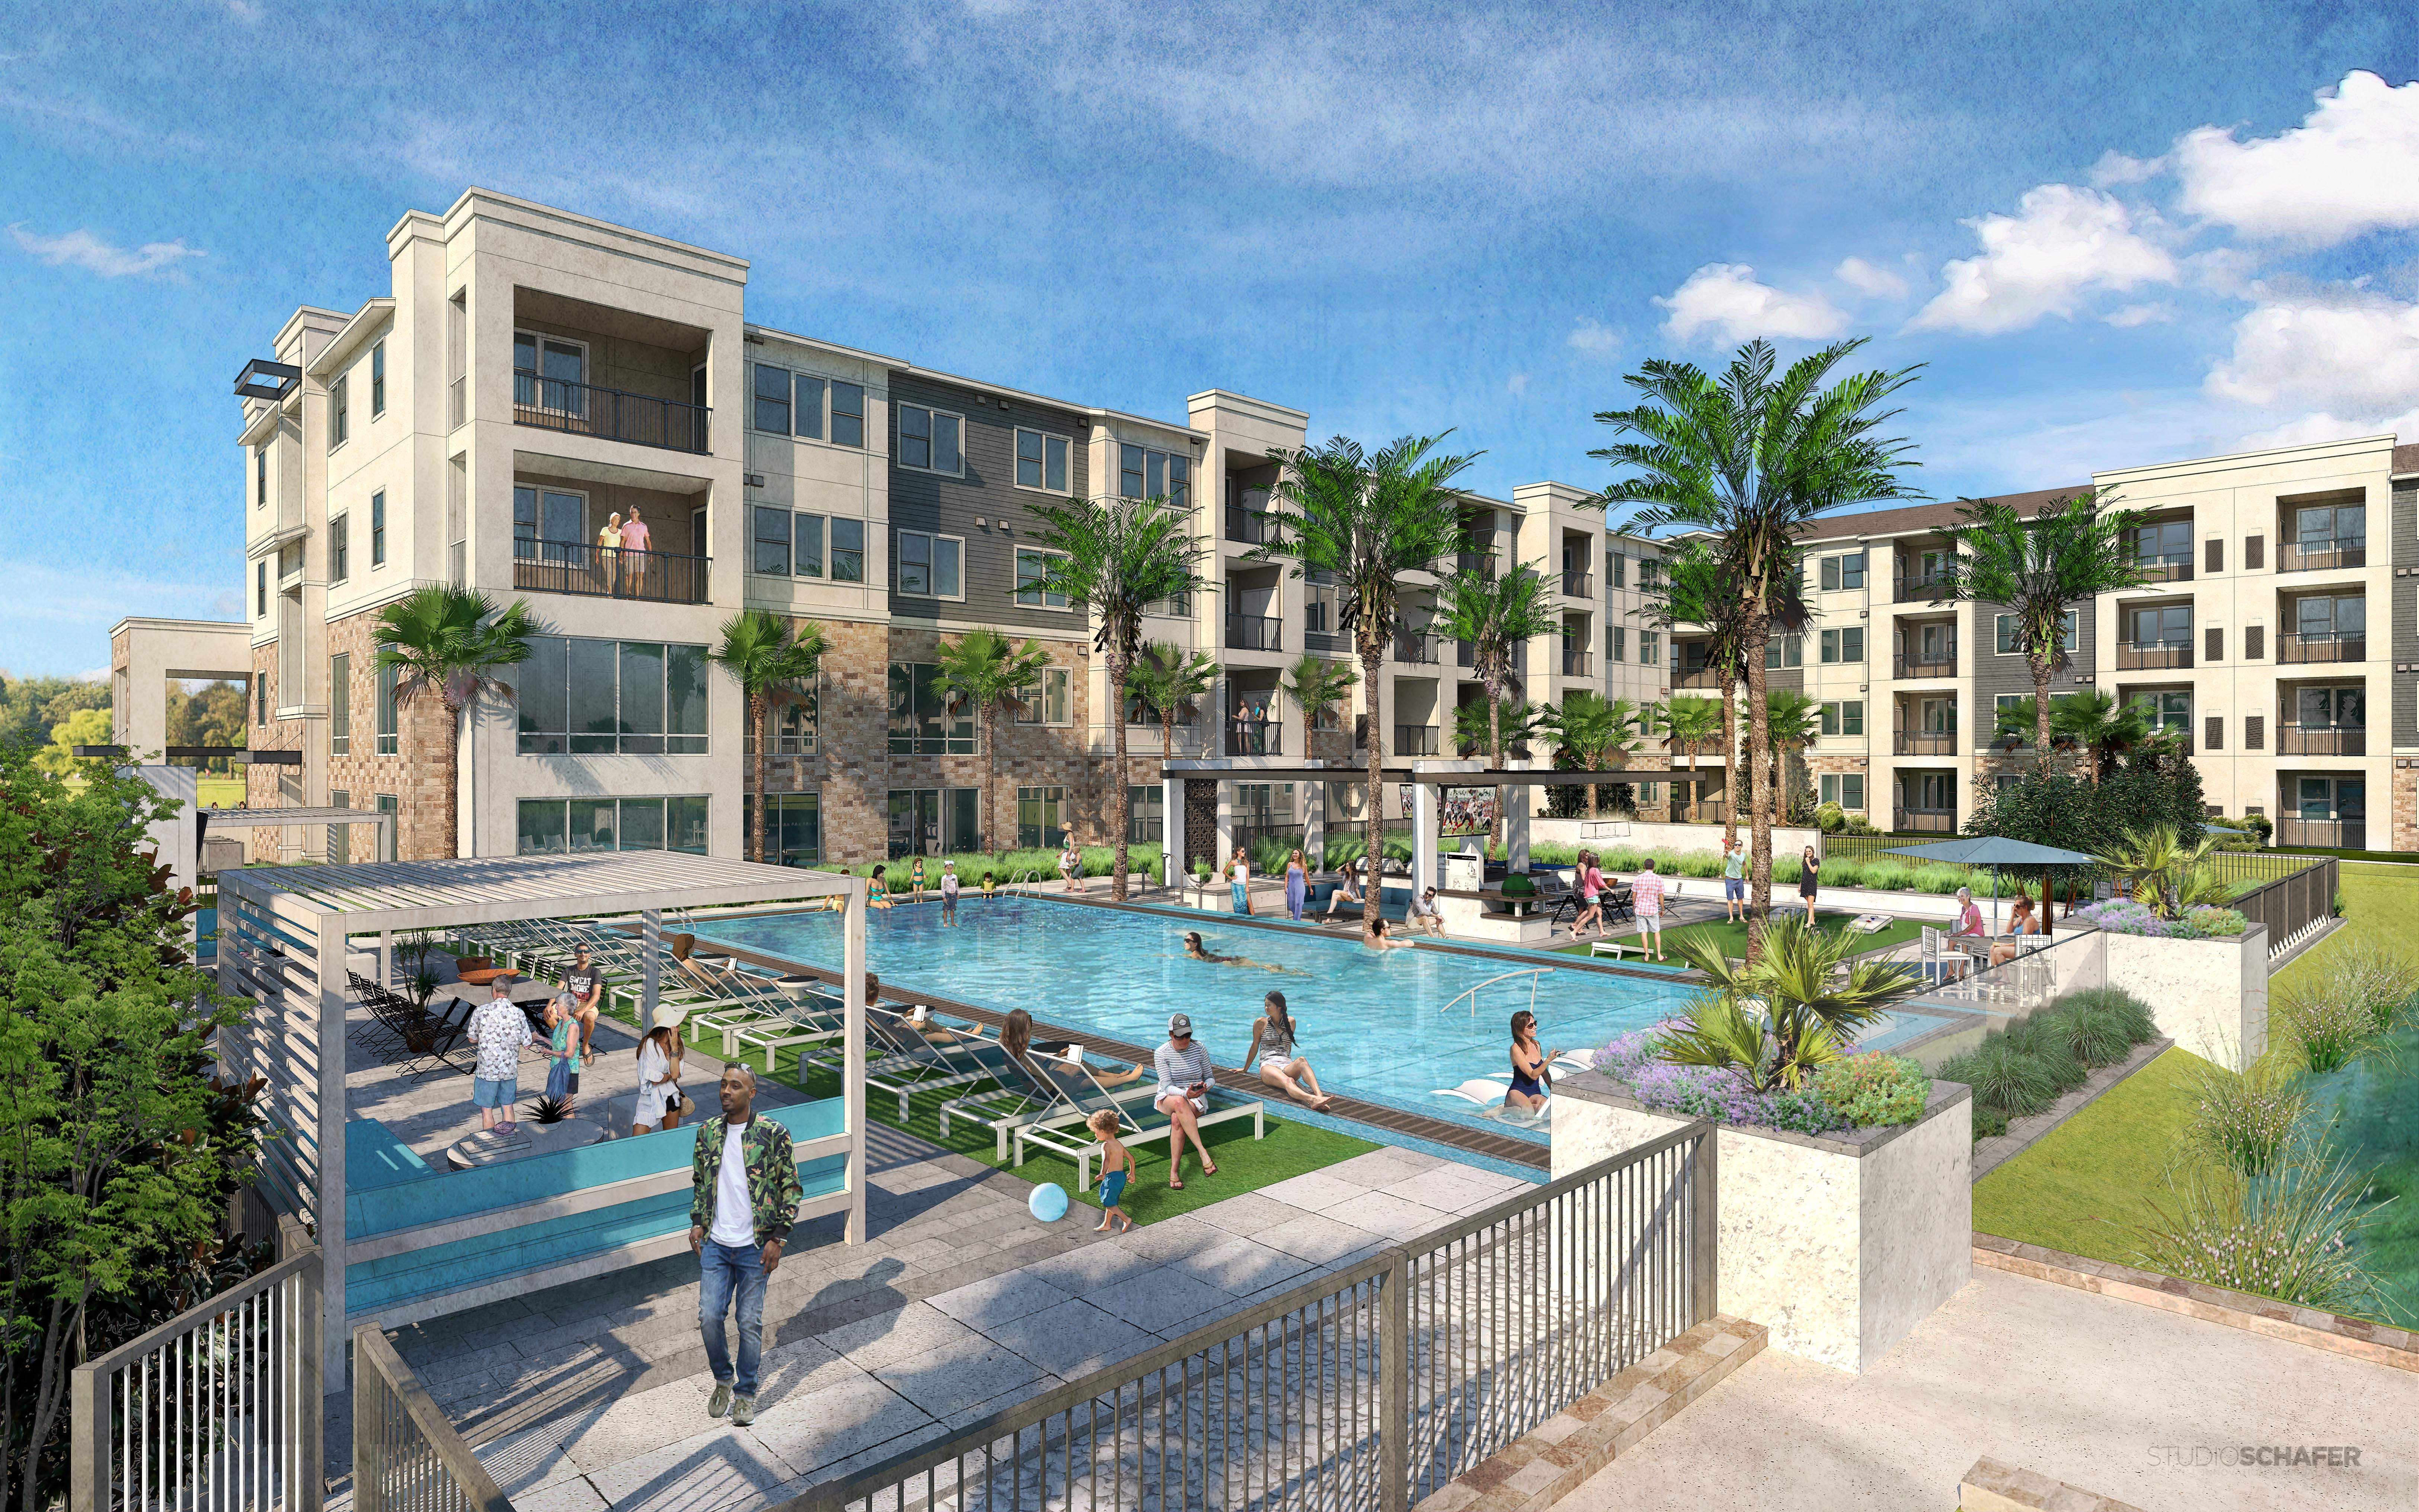 Astounding Three Big New Apartment Projects Underway In Tampa Bay Download Free Architecture Designs Scobabritishbridgeorg